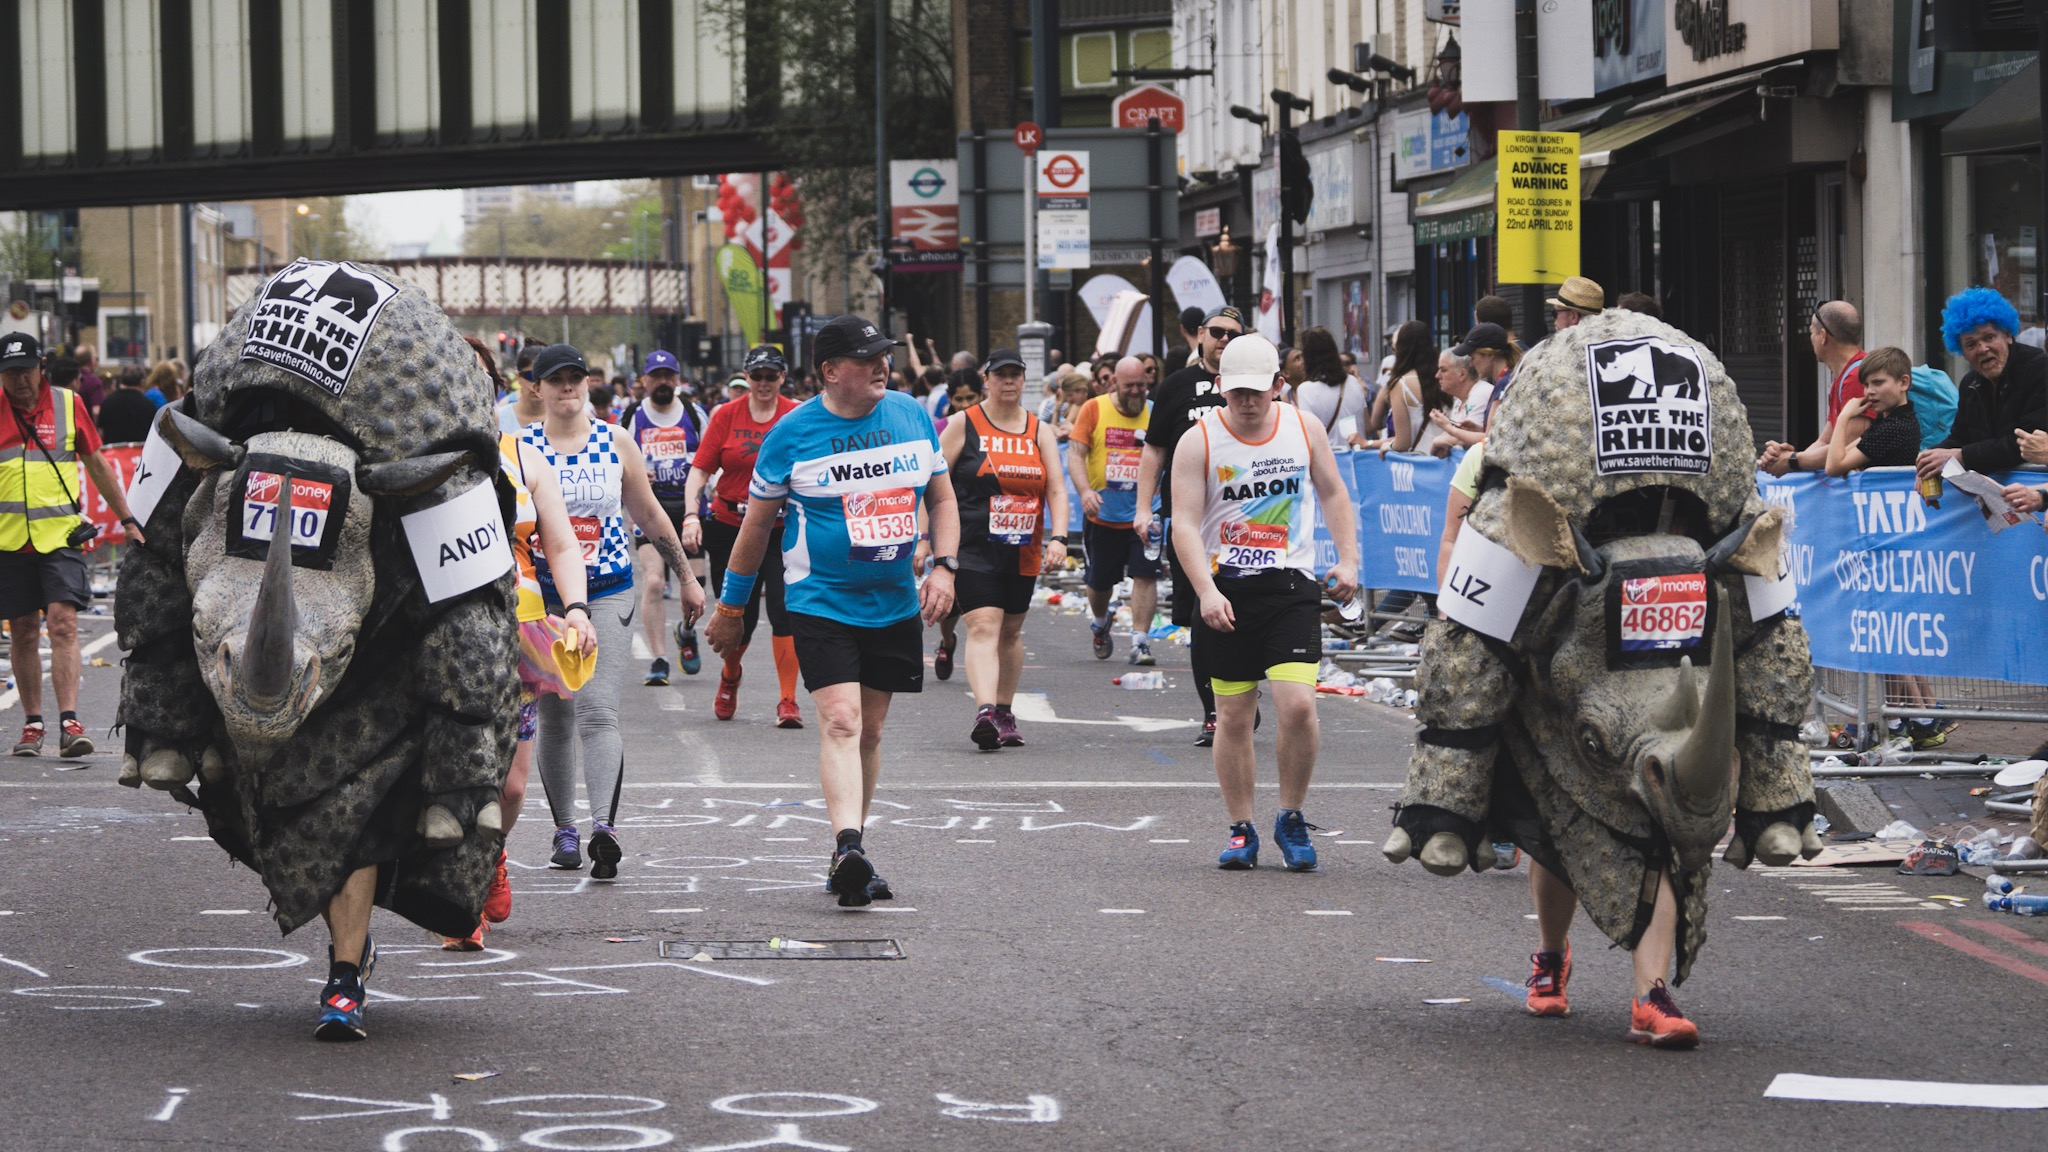 Seven-Tips-For-Smashing-The-London-Marathon